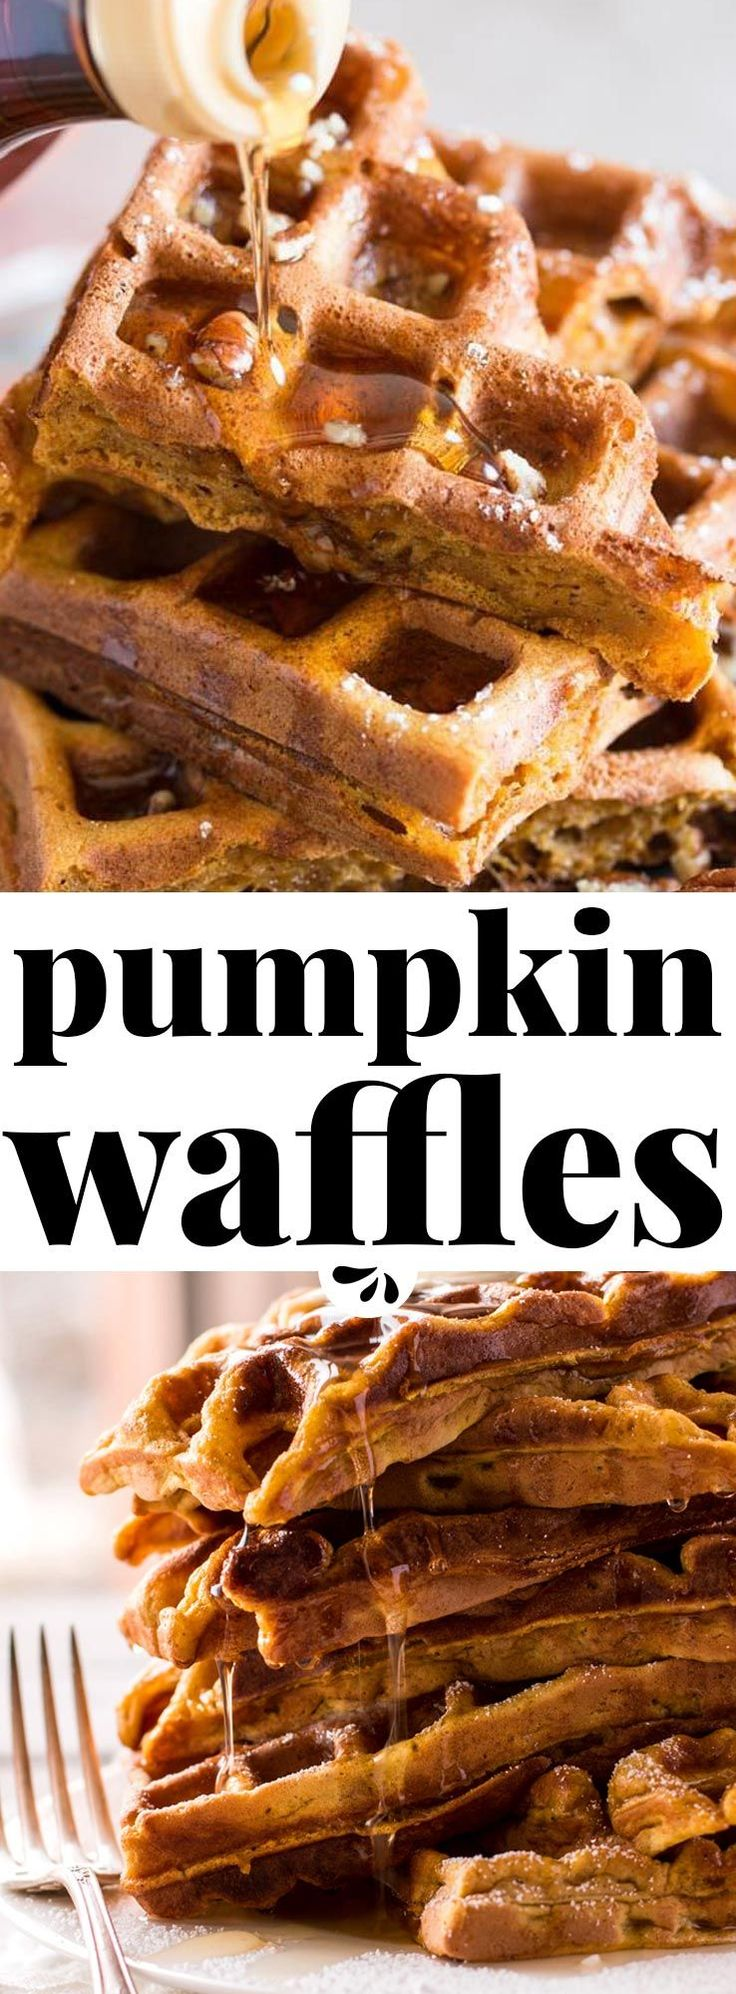 Looking for easy fall breakfast ideas? These simple homemade pumpkin waffles definitely need to happen in your waffle maker this autumn! The recipe makes a quick batter from scratch with an entire cup (Fall Bake Healthy)